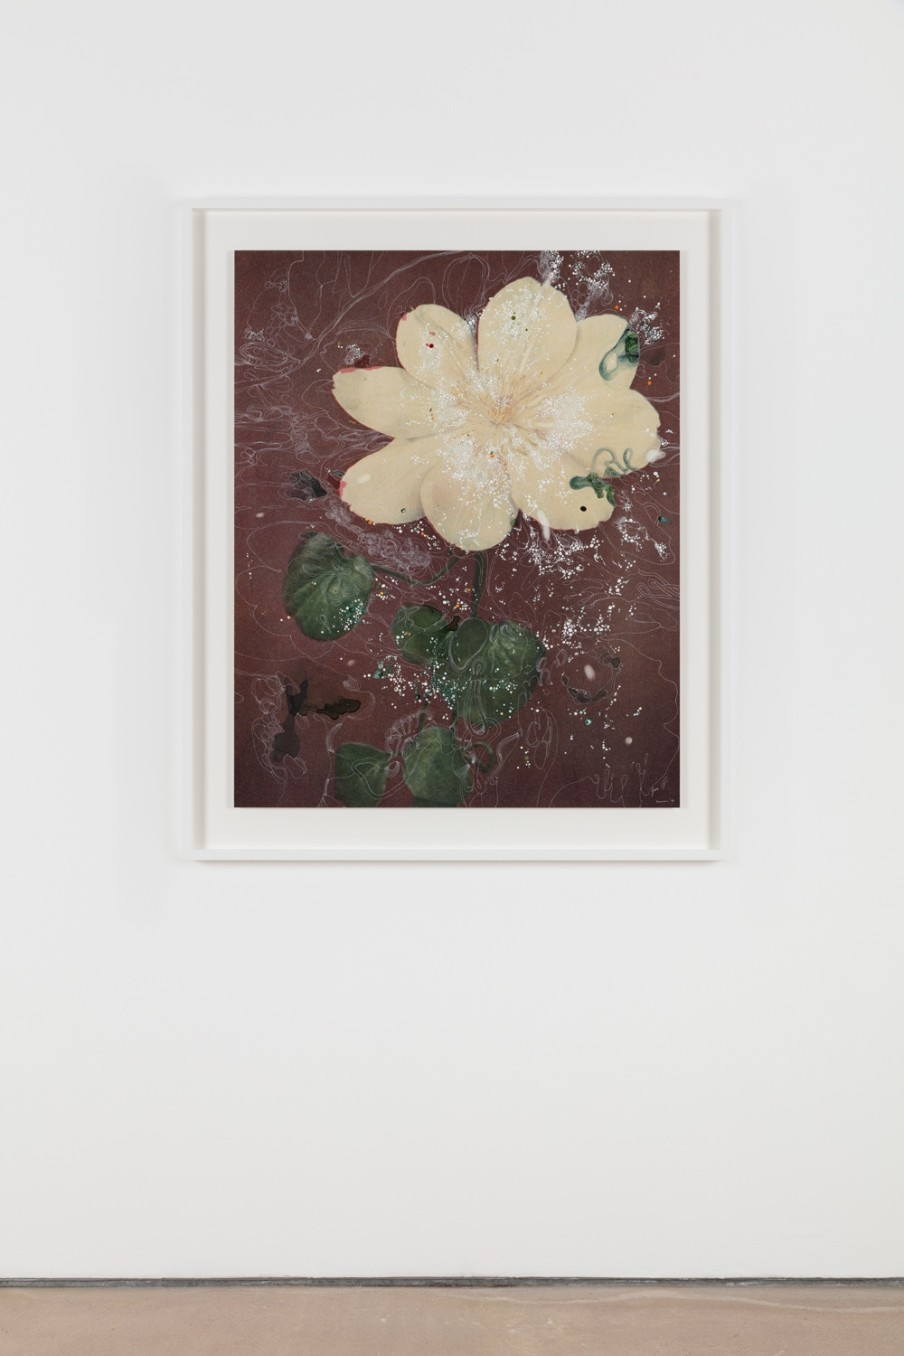 Sebastiaan Bremer, Clematis Hybrid Mevr. Le Feher Coutre, 2018, Archival inkjet pigment print on resin coated paper with hand additions in acrylic, photo retouch dye, and pigment pen, 108 x 86.4 cm, 42 1/2 x 34 1/8 in, Framed: 127.2 x 105.5 x 5 cm, 50 1/8